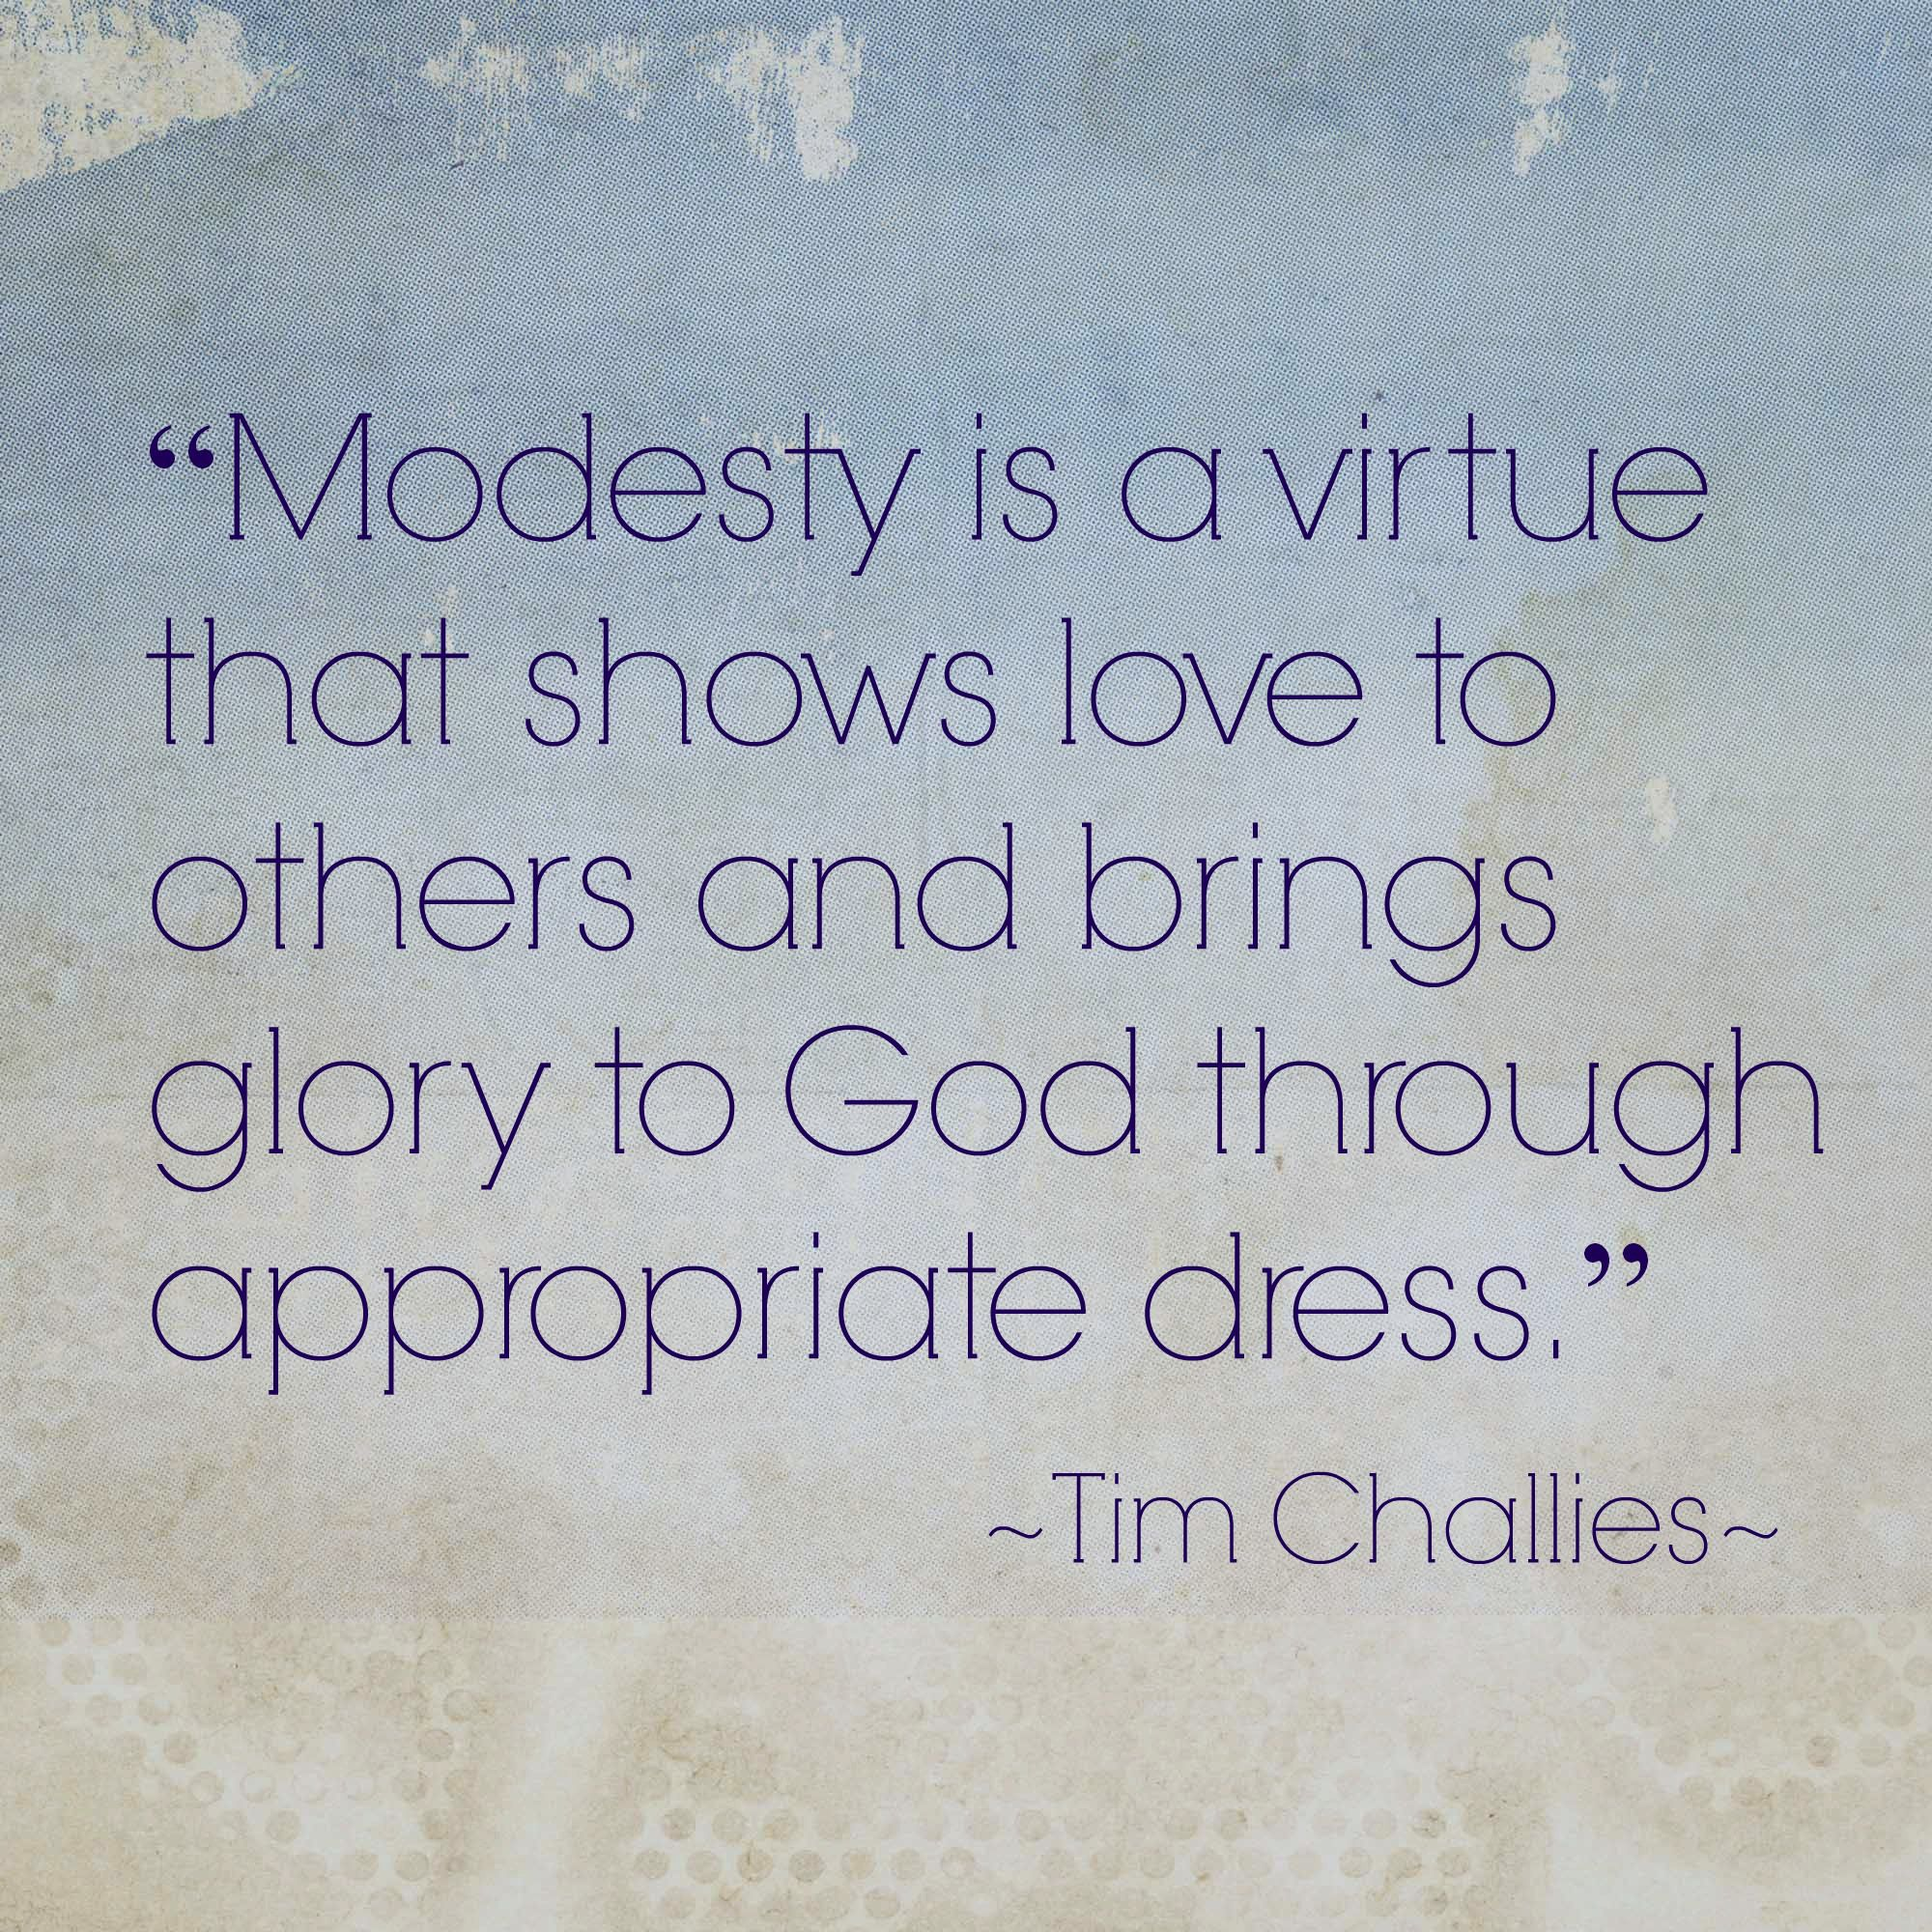 Style Guide for Christian Girls: Modesty | Project Inspired